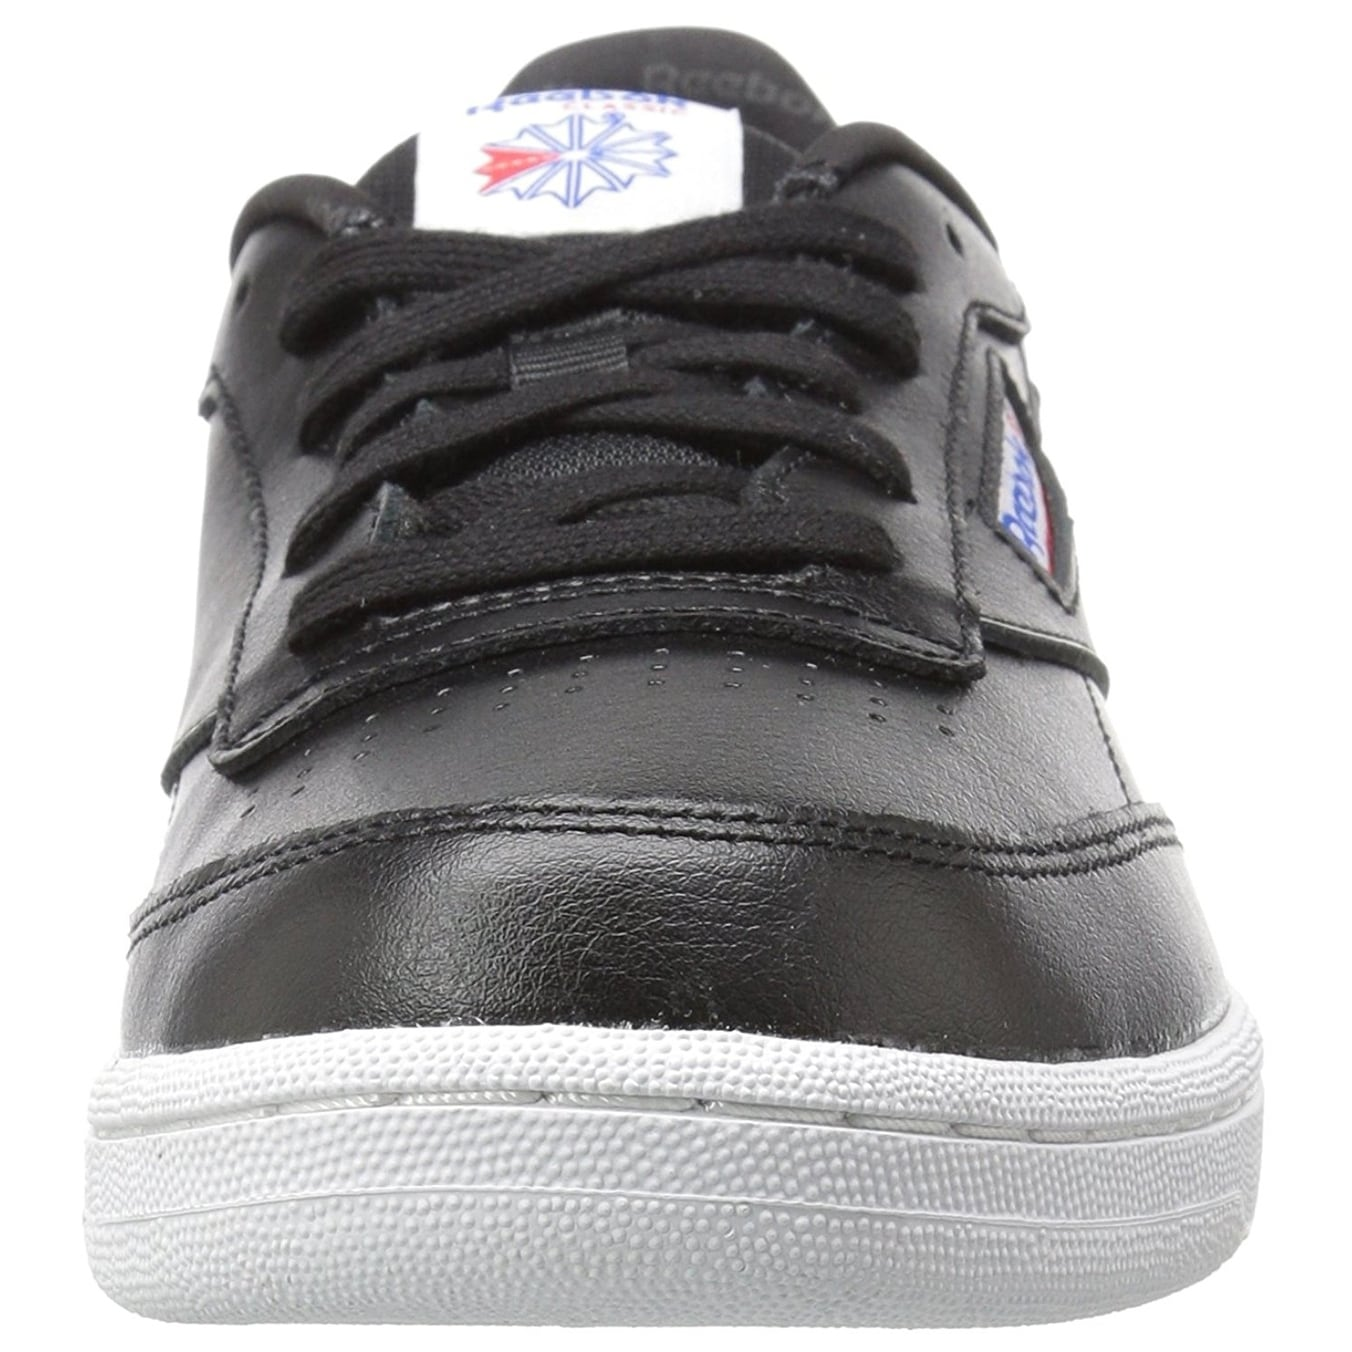 a83d4ae505d Shop Kids Reebok Girls Club c Low Top Lace Up Fashion Sneaker - On Sale -  Free Shipping On Orders Over  45 - Overstock.com - 22054377